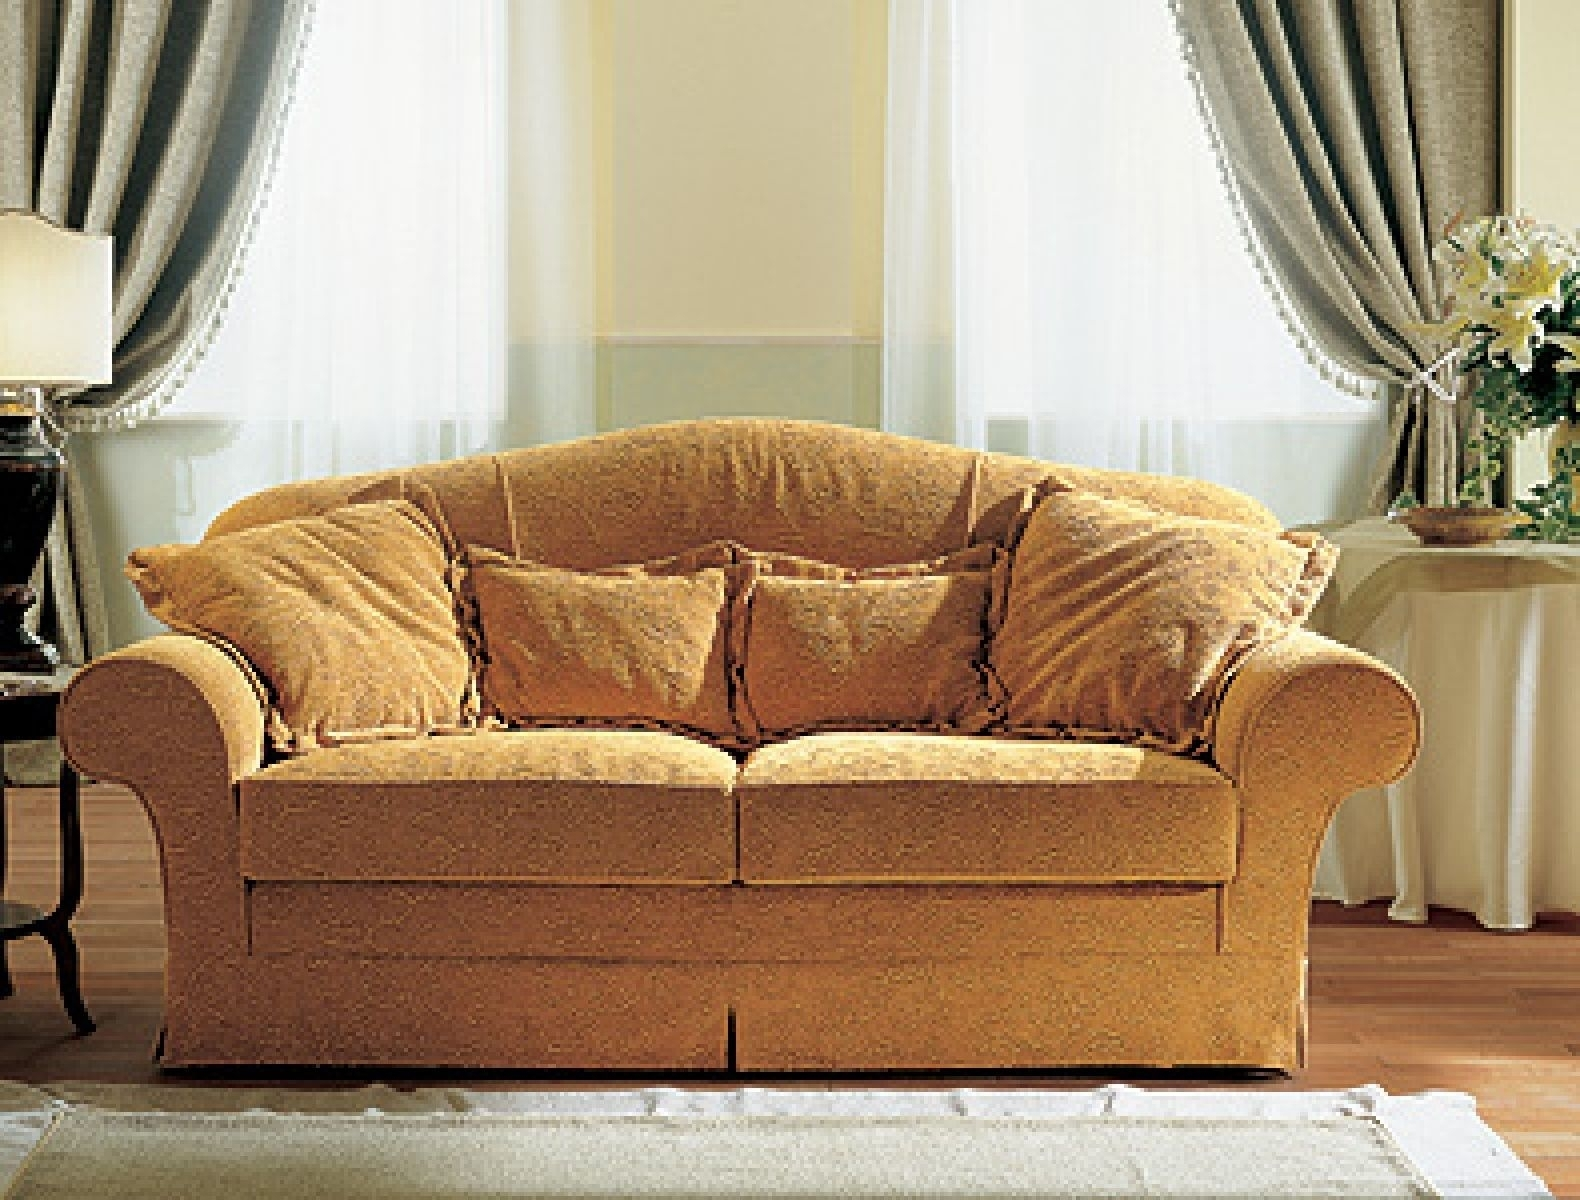 Elegant Traditional Sofas 70 For Your Office Sofa Ideas With Regarding Traditional Sofas (Image 2 of 10)